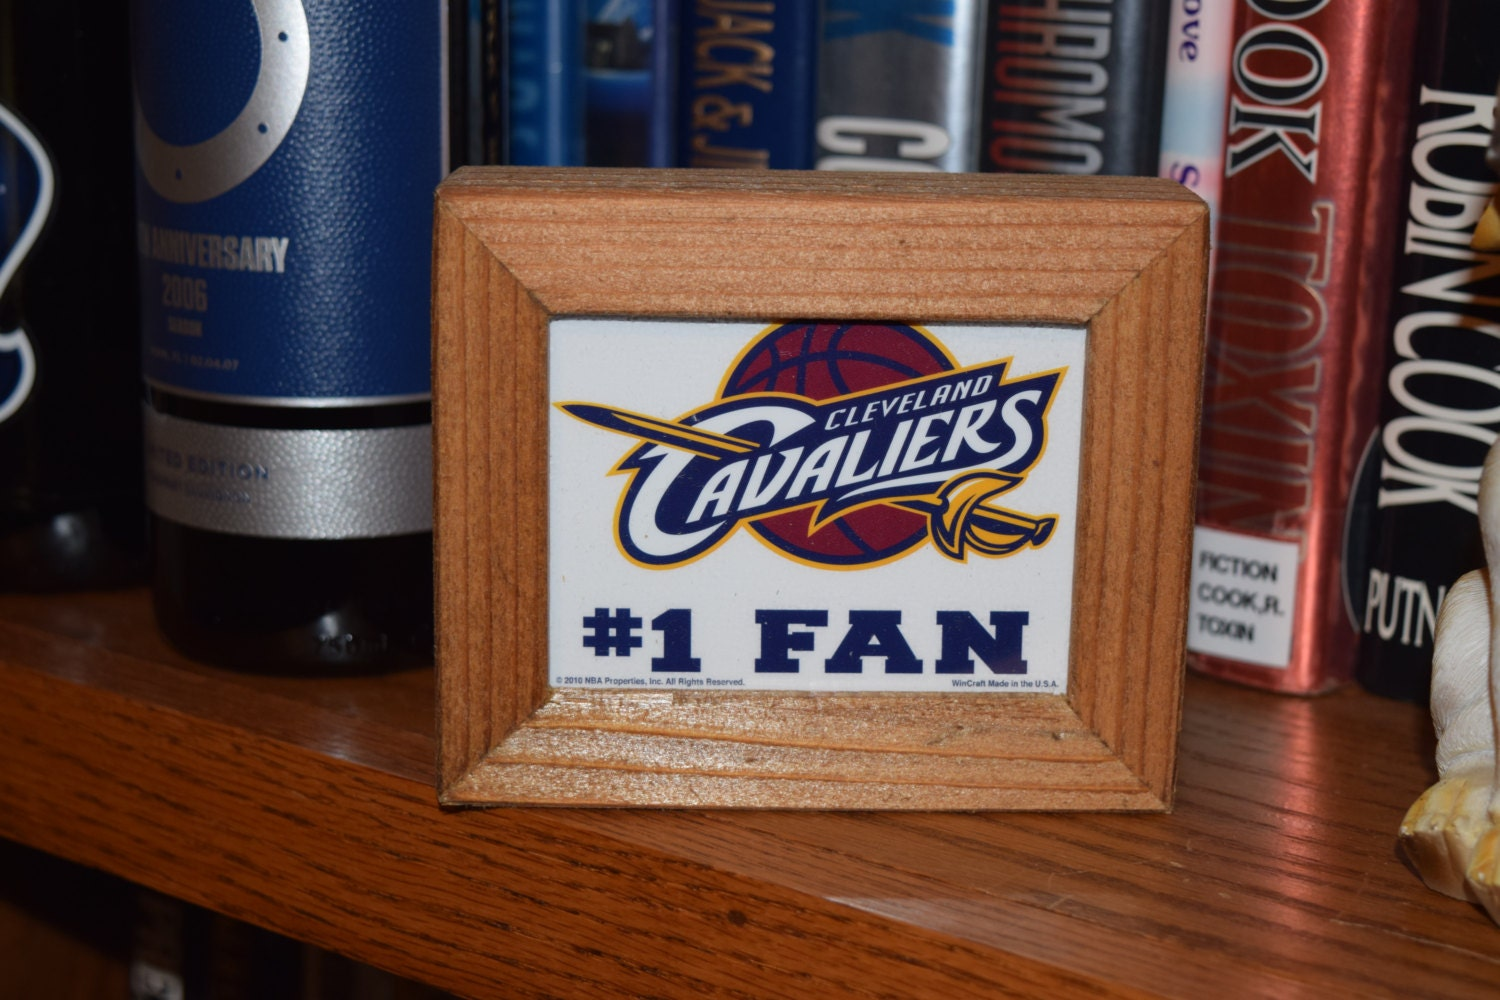 Personalized Man Cave Signs Free Shipping : Free shipping cleveland cavaliers custom cedar framed fan